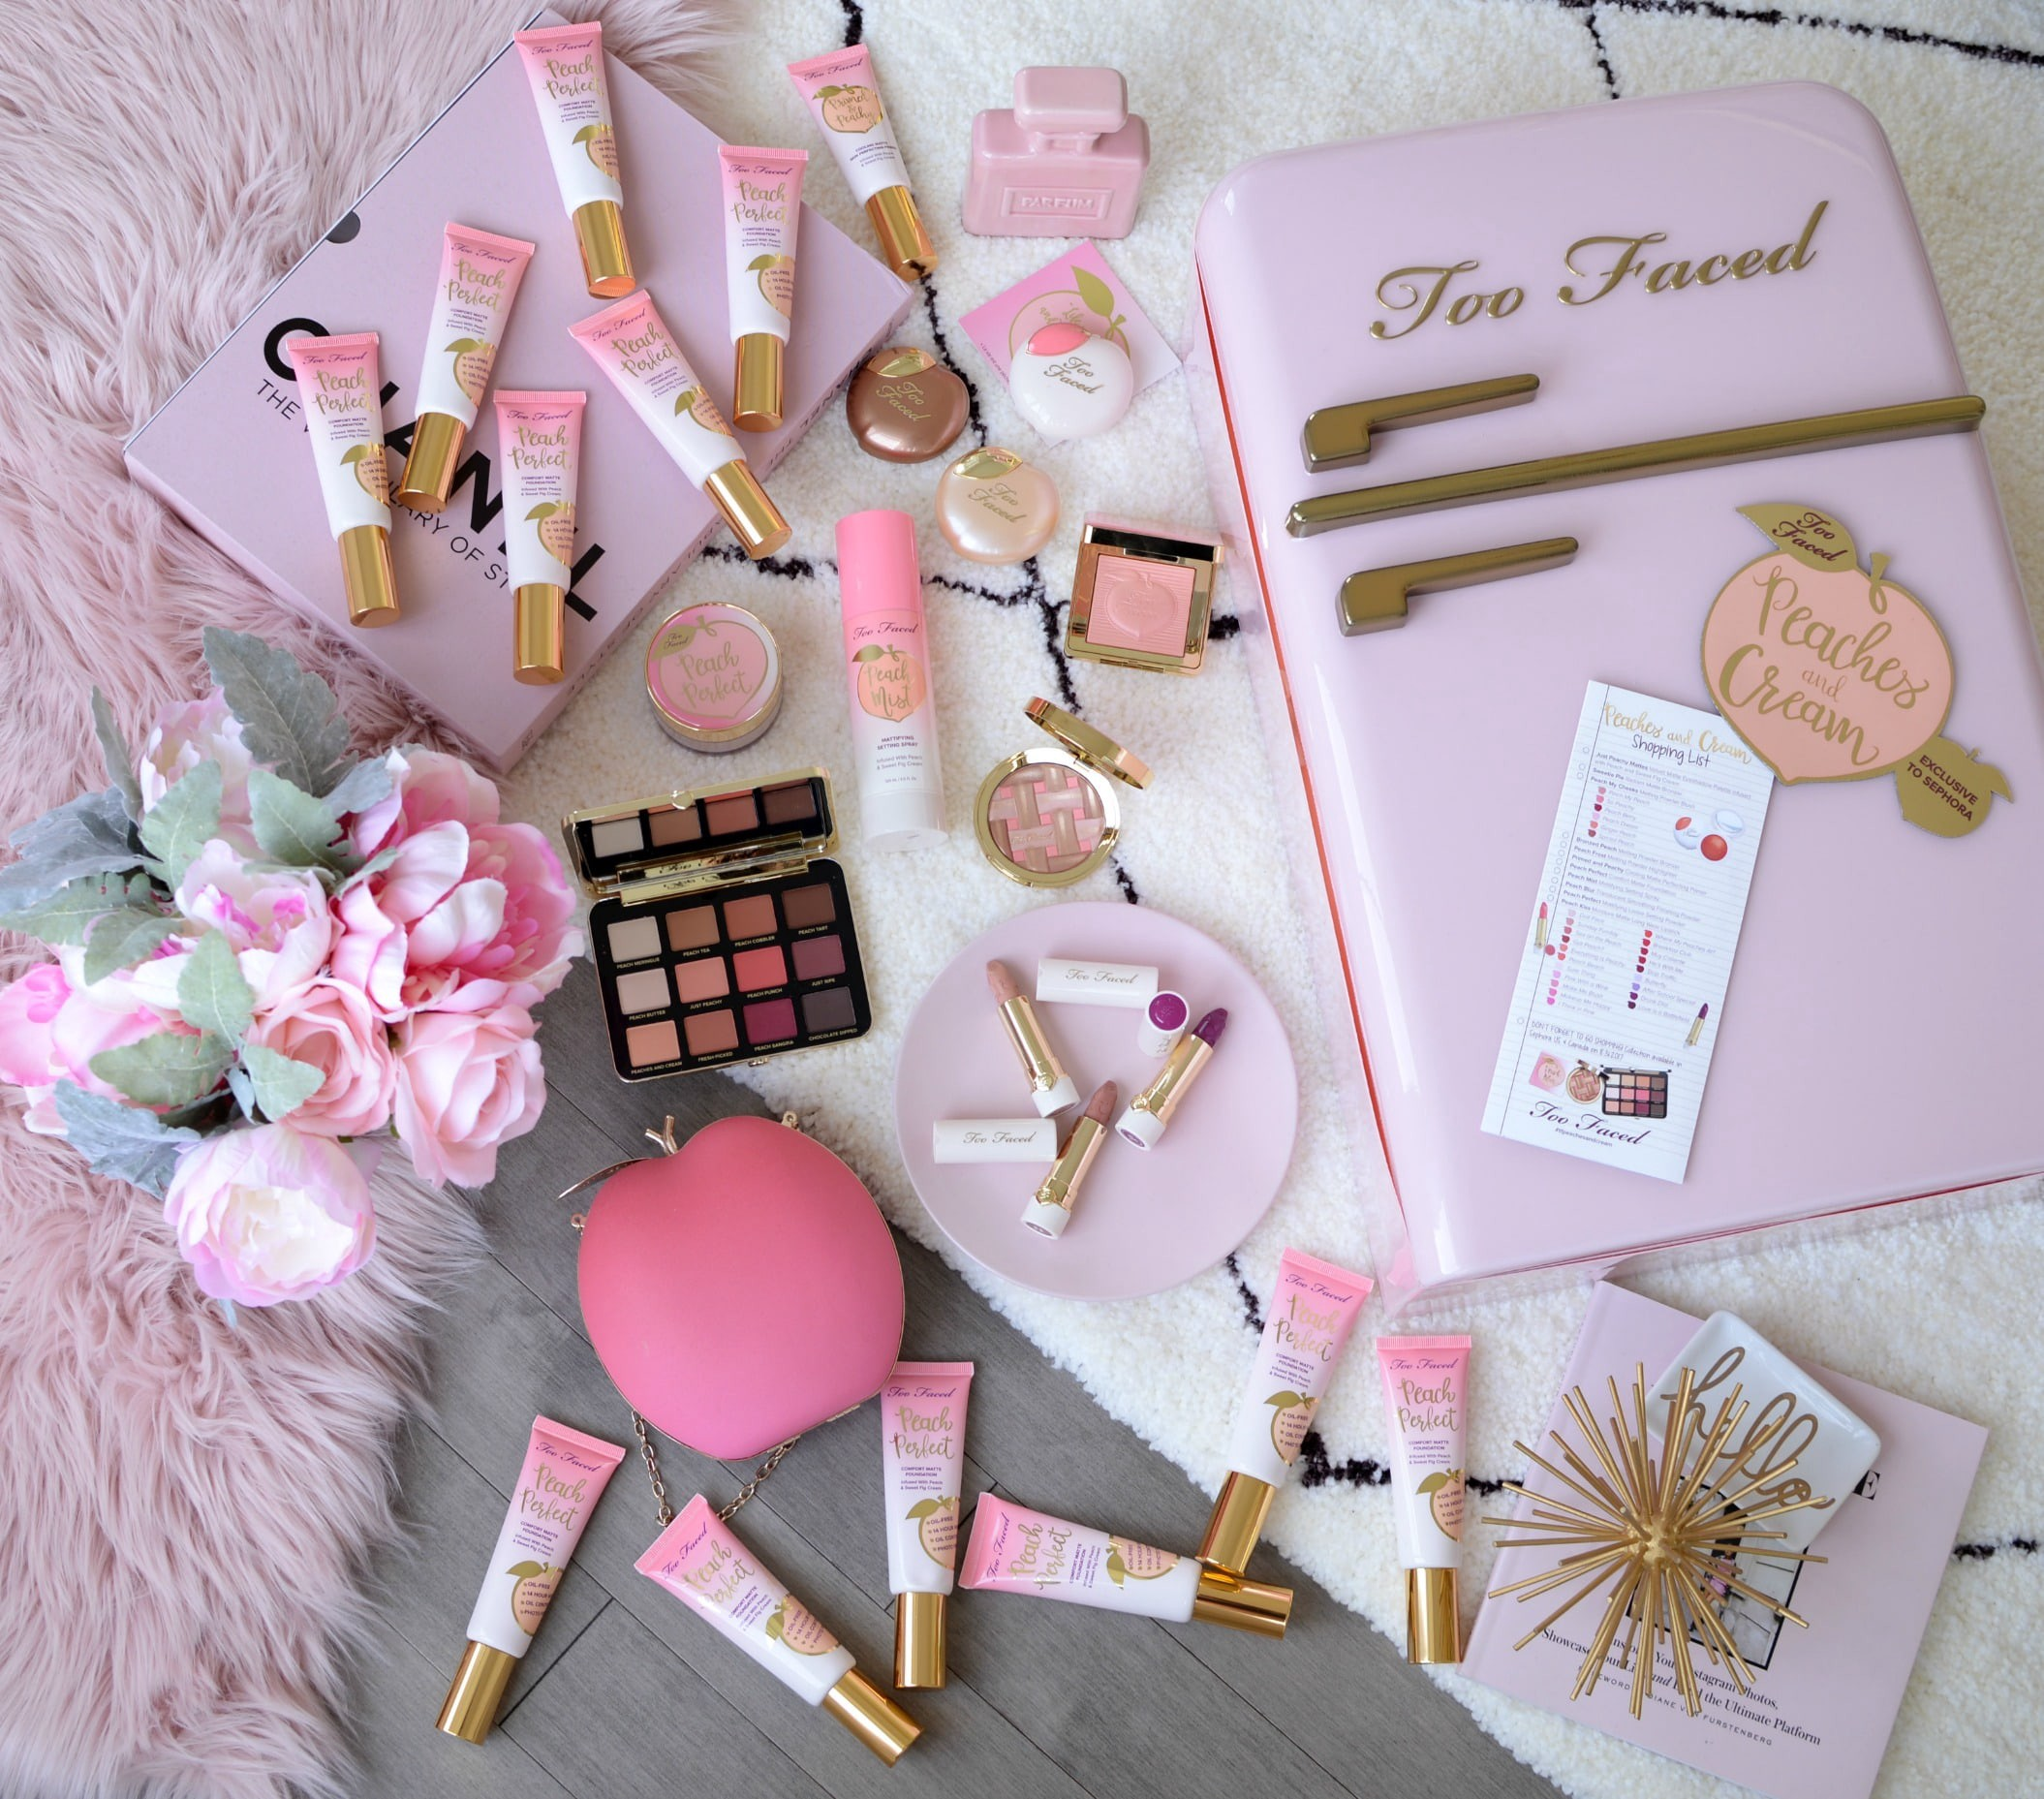 Too Faced PR package